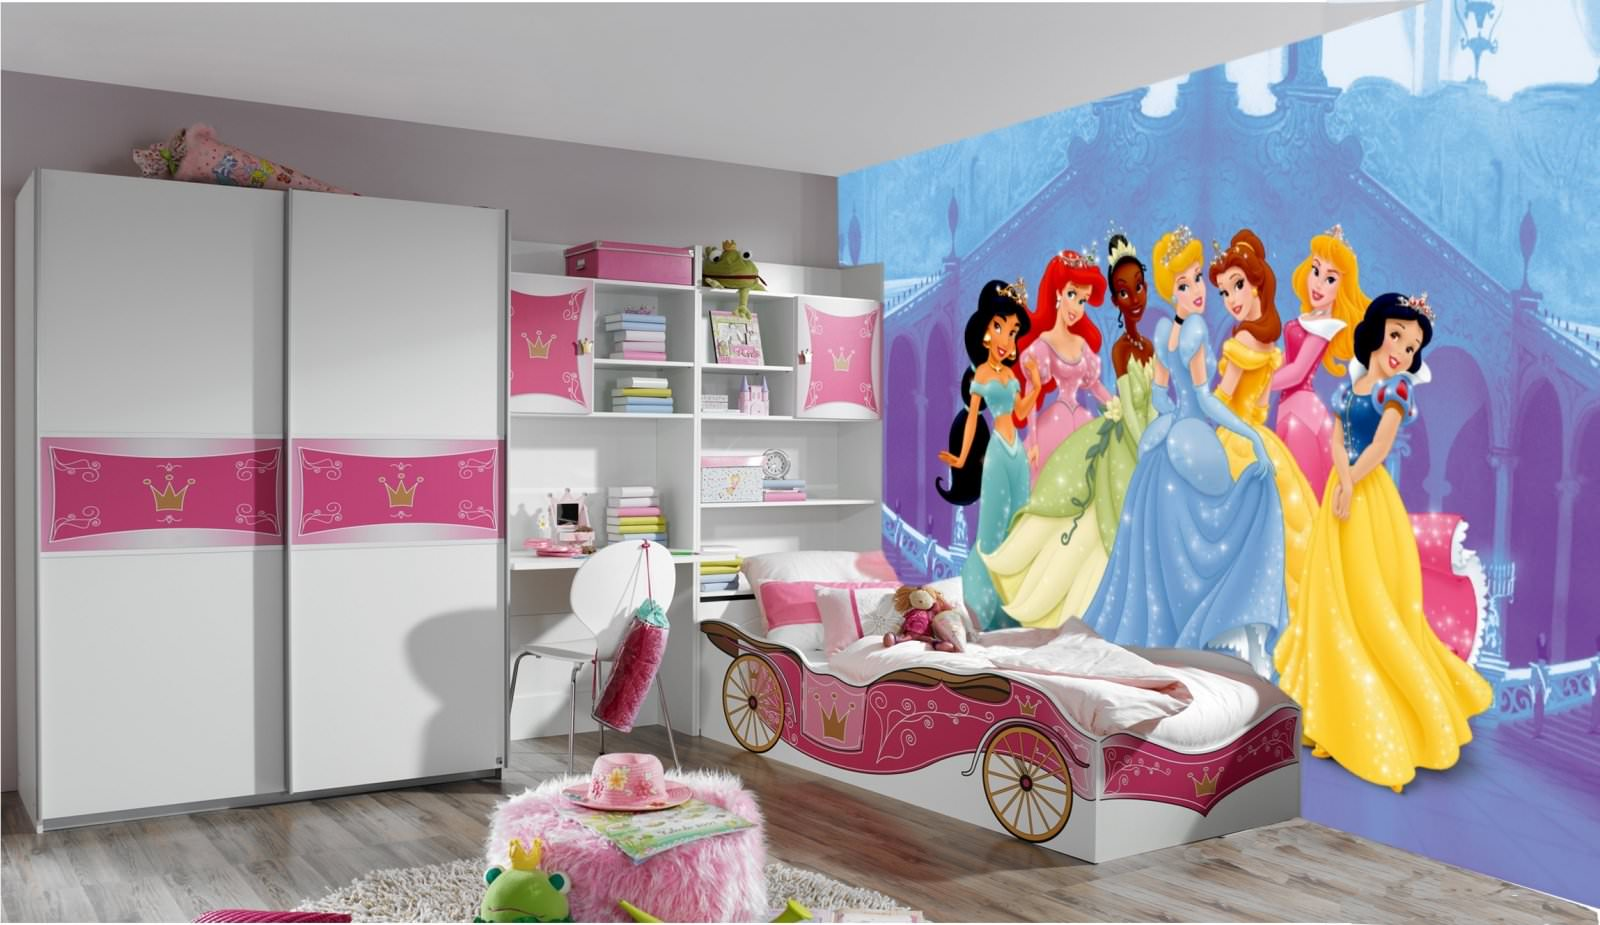 disney princesse poster papier peint xxl 350x250 cm. Black Bedroom Furniture Sets. Home Design Ideas